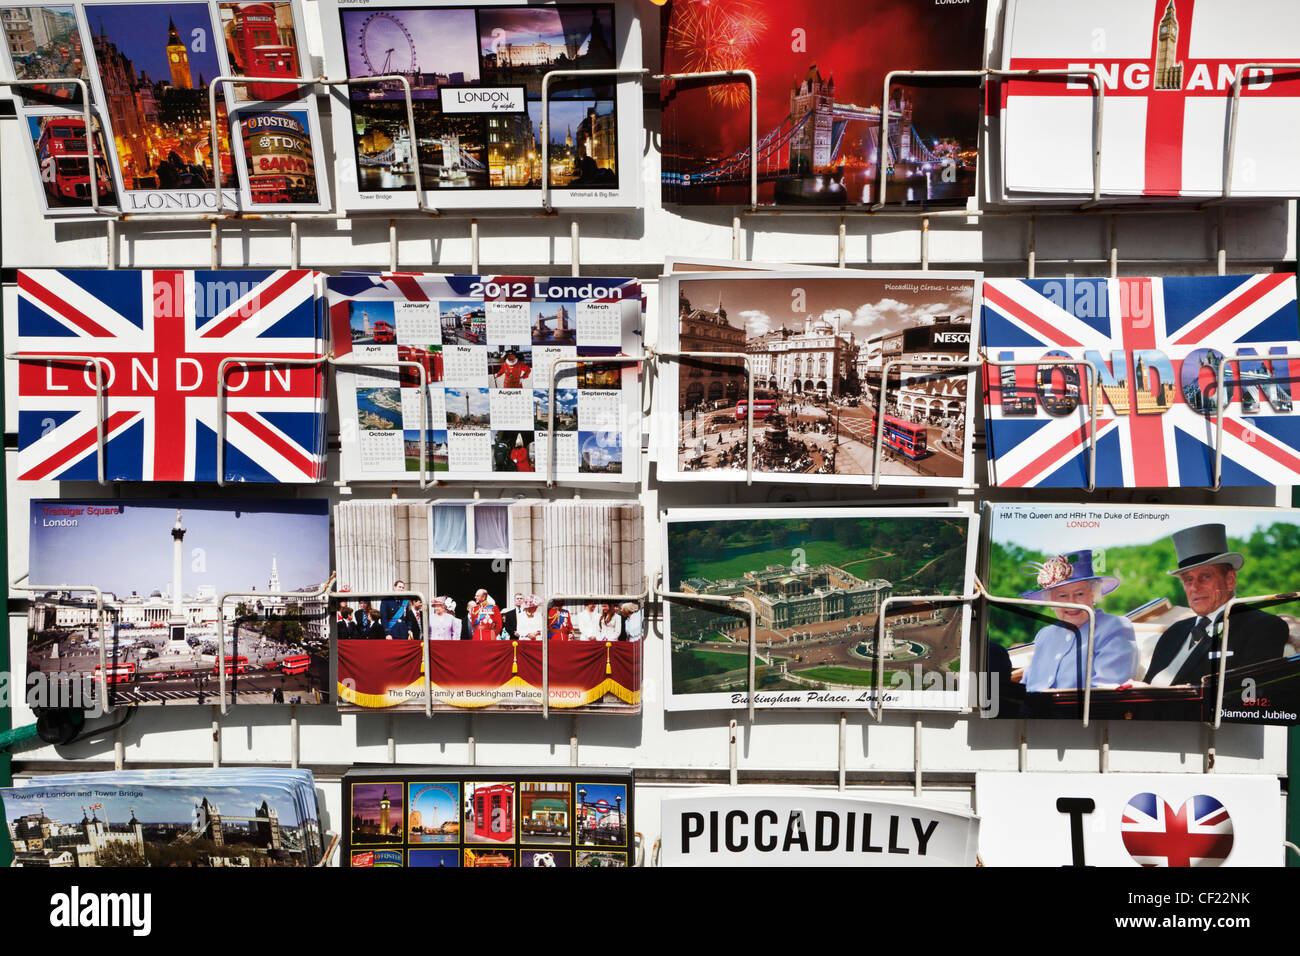 Souvenir postcards of London on display in a rack. - Stock Image